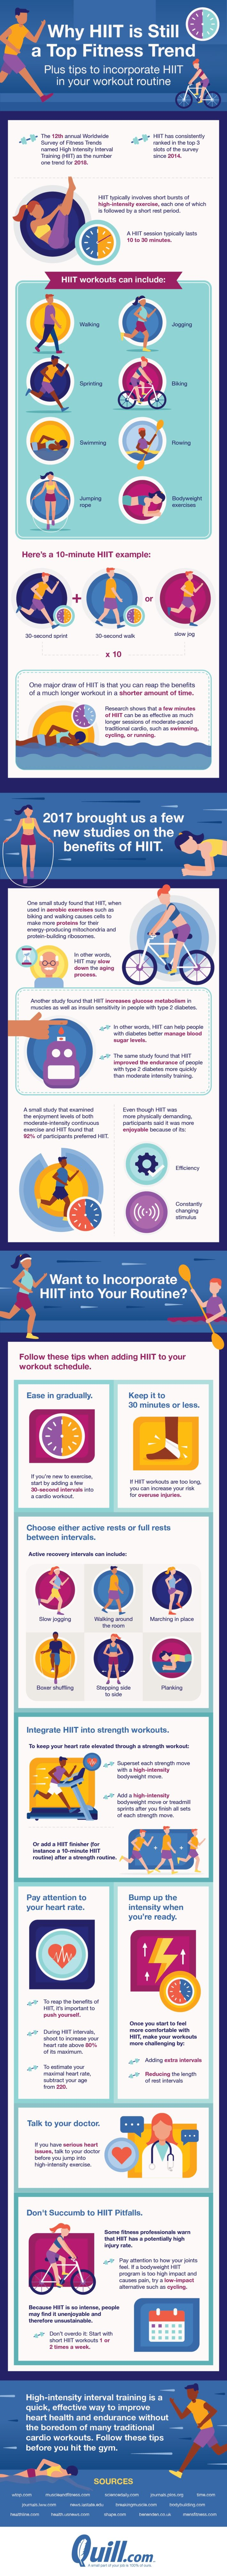 Why HIIT is still a top trend plus tips to incorporate it into your workout routine